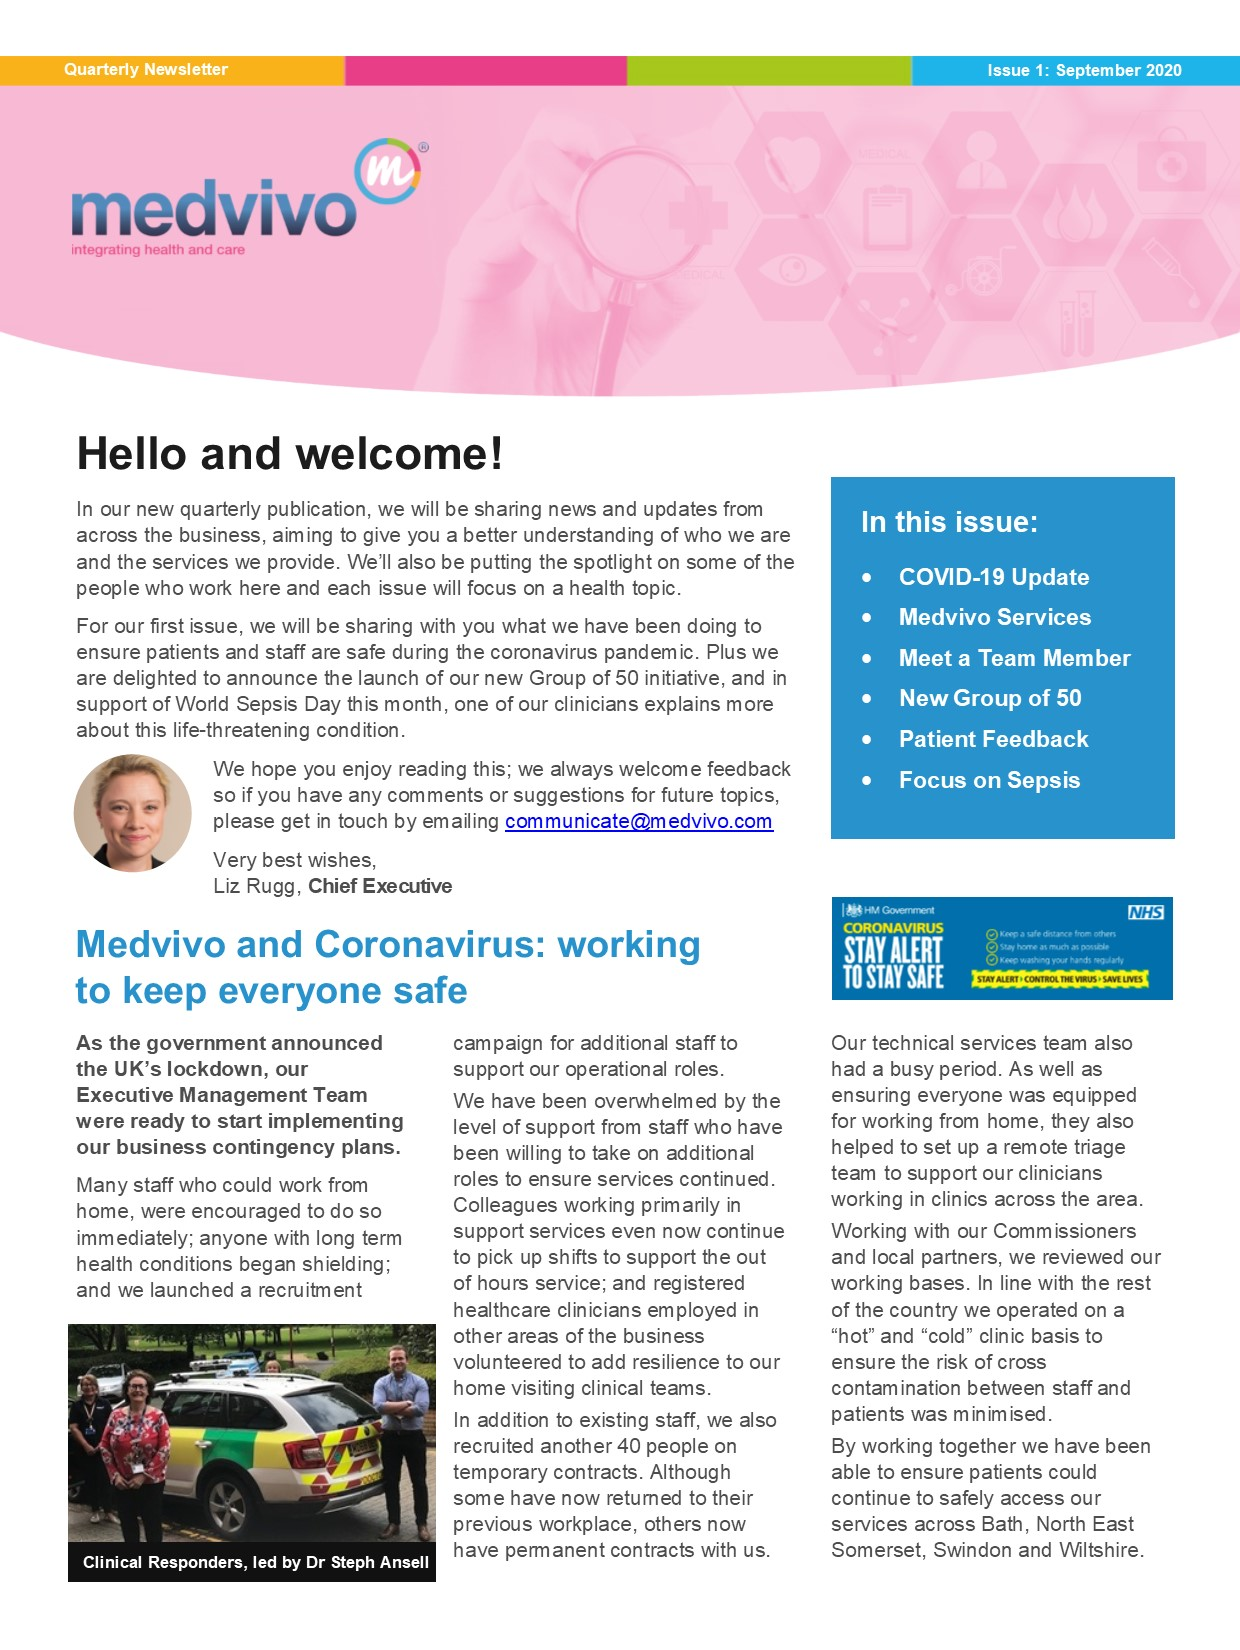 Cover image of newsletter